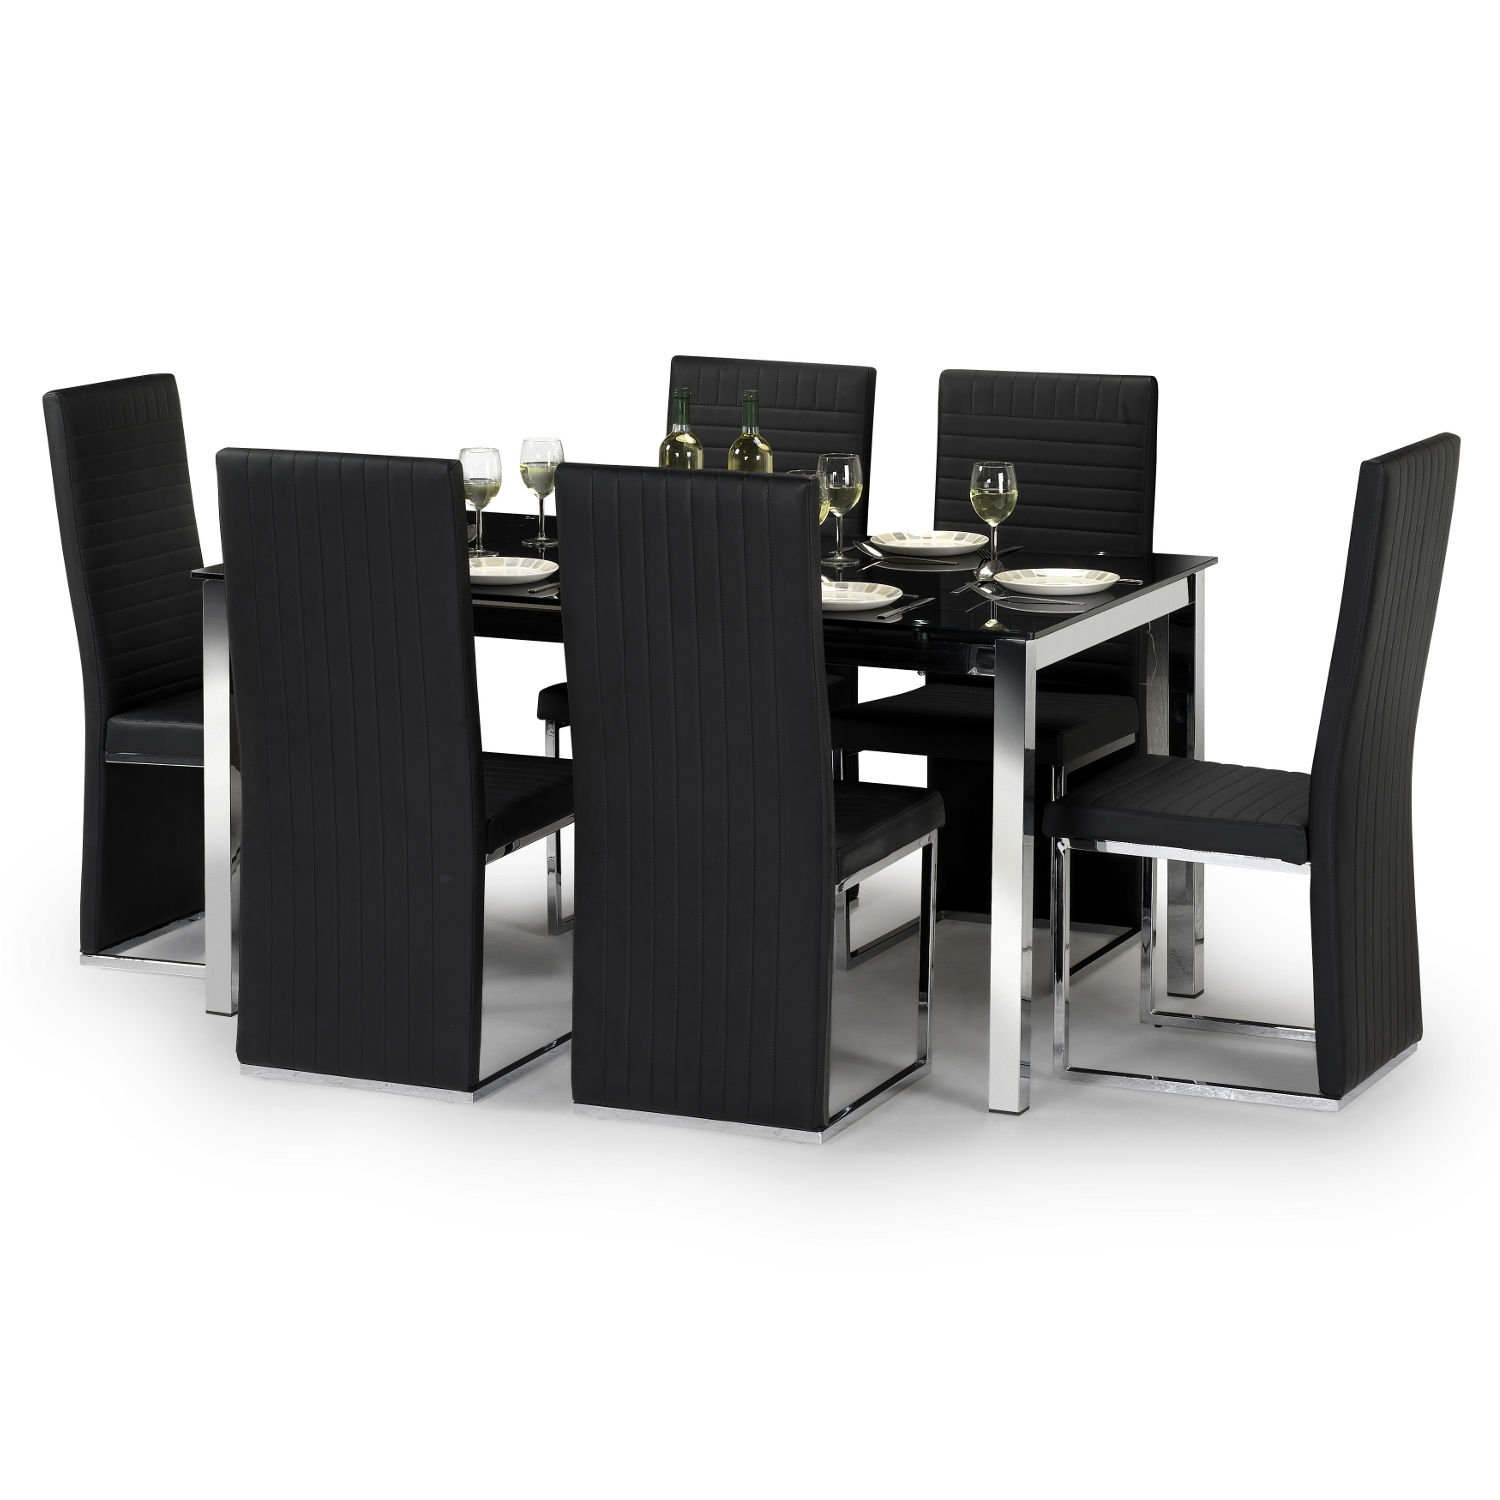 Marvelous Tempo Dining Table Set   W150cm   Black Glass U0026 Chrome   6 Faux Leather  Chairs: Amazon.co.uk: Kitchen U0026 Home